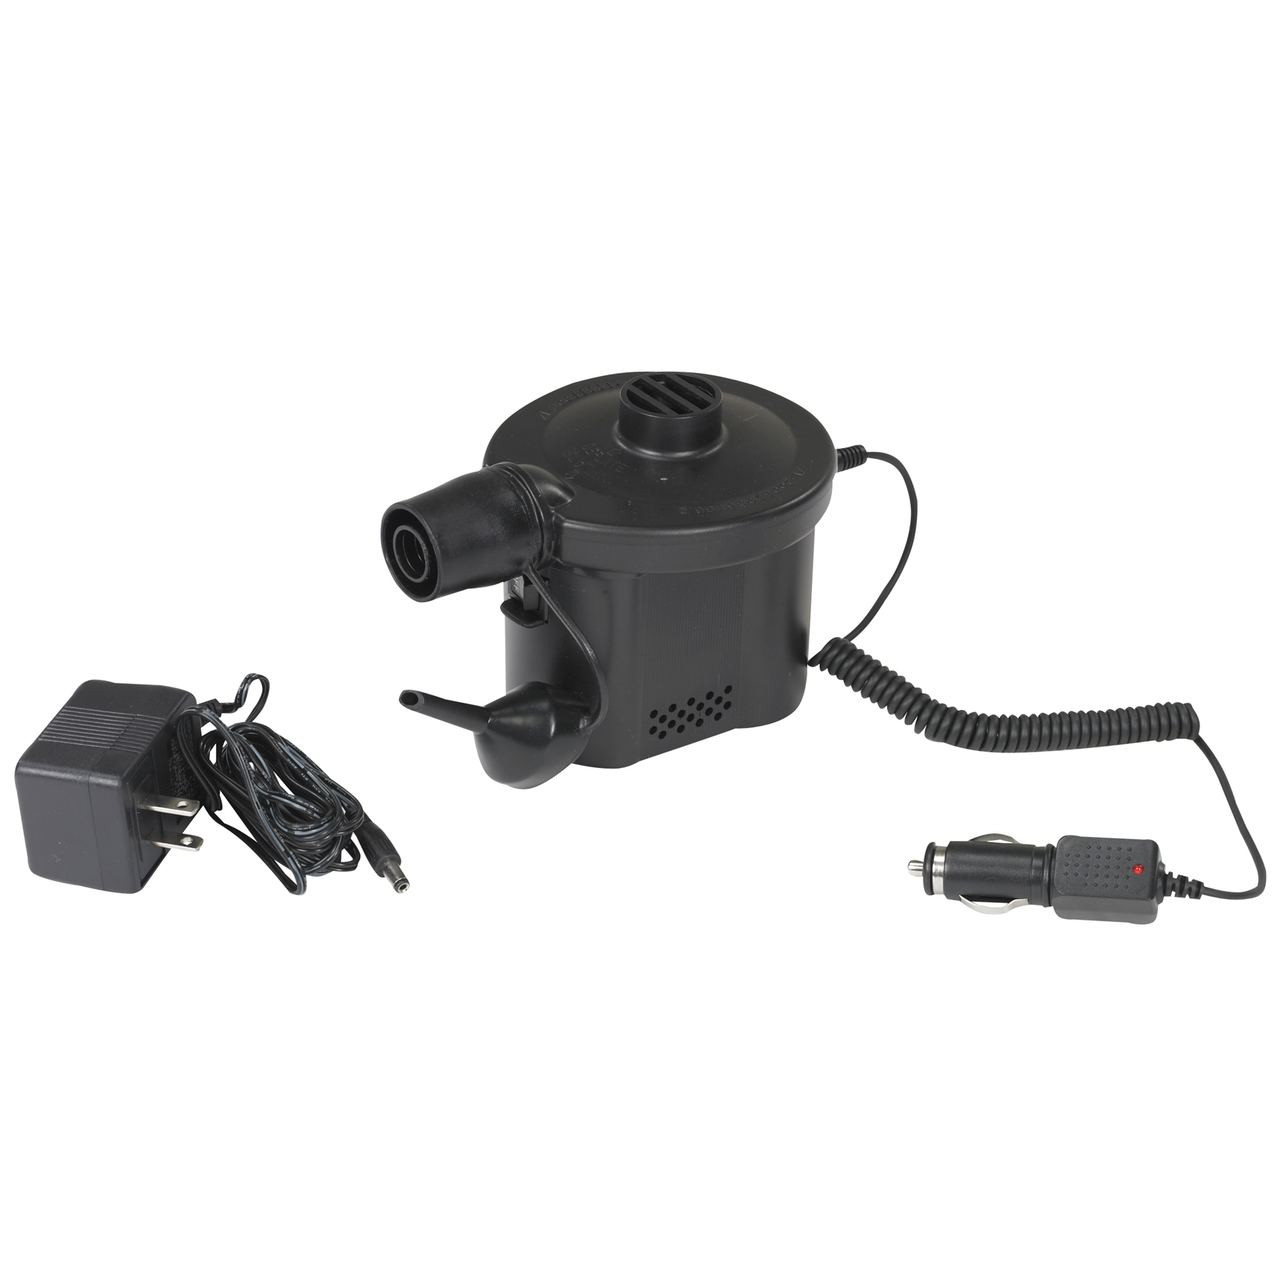 Wenzel Rechargeable pump with the car outlet adapter connected and the wall charger sitting next to it